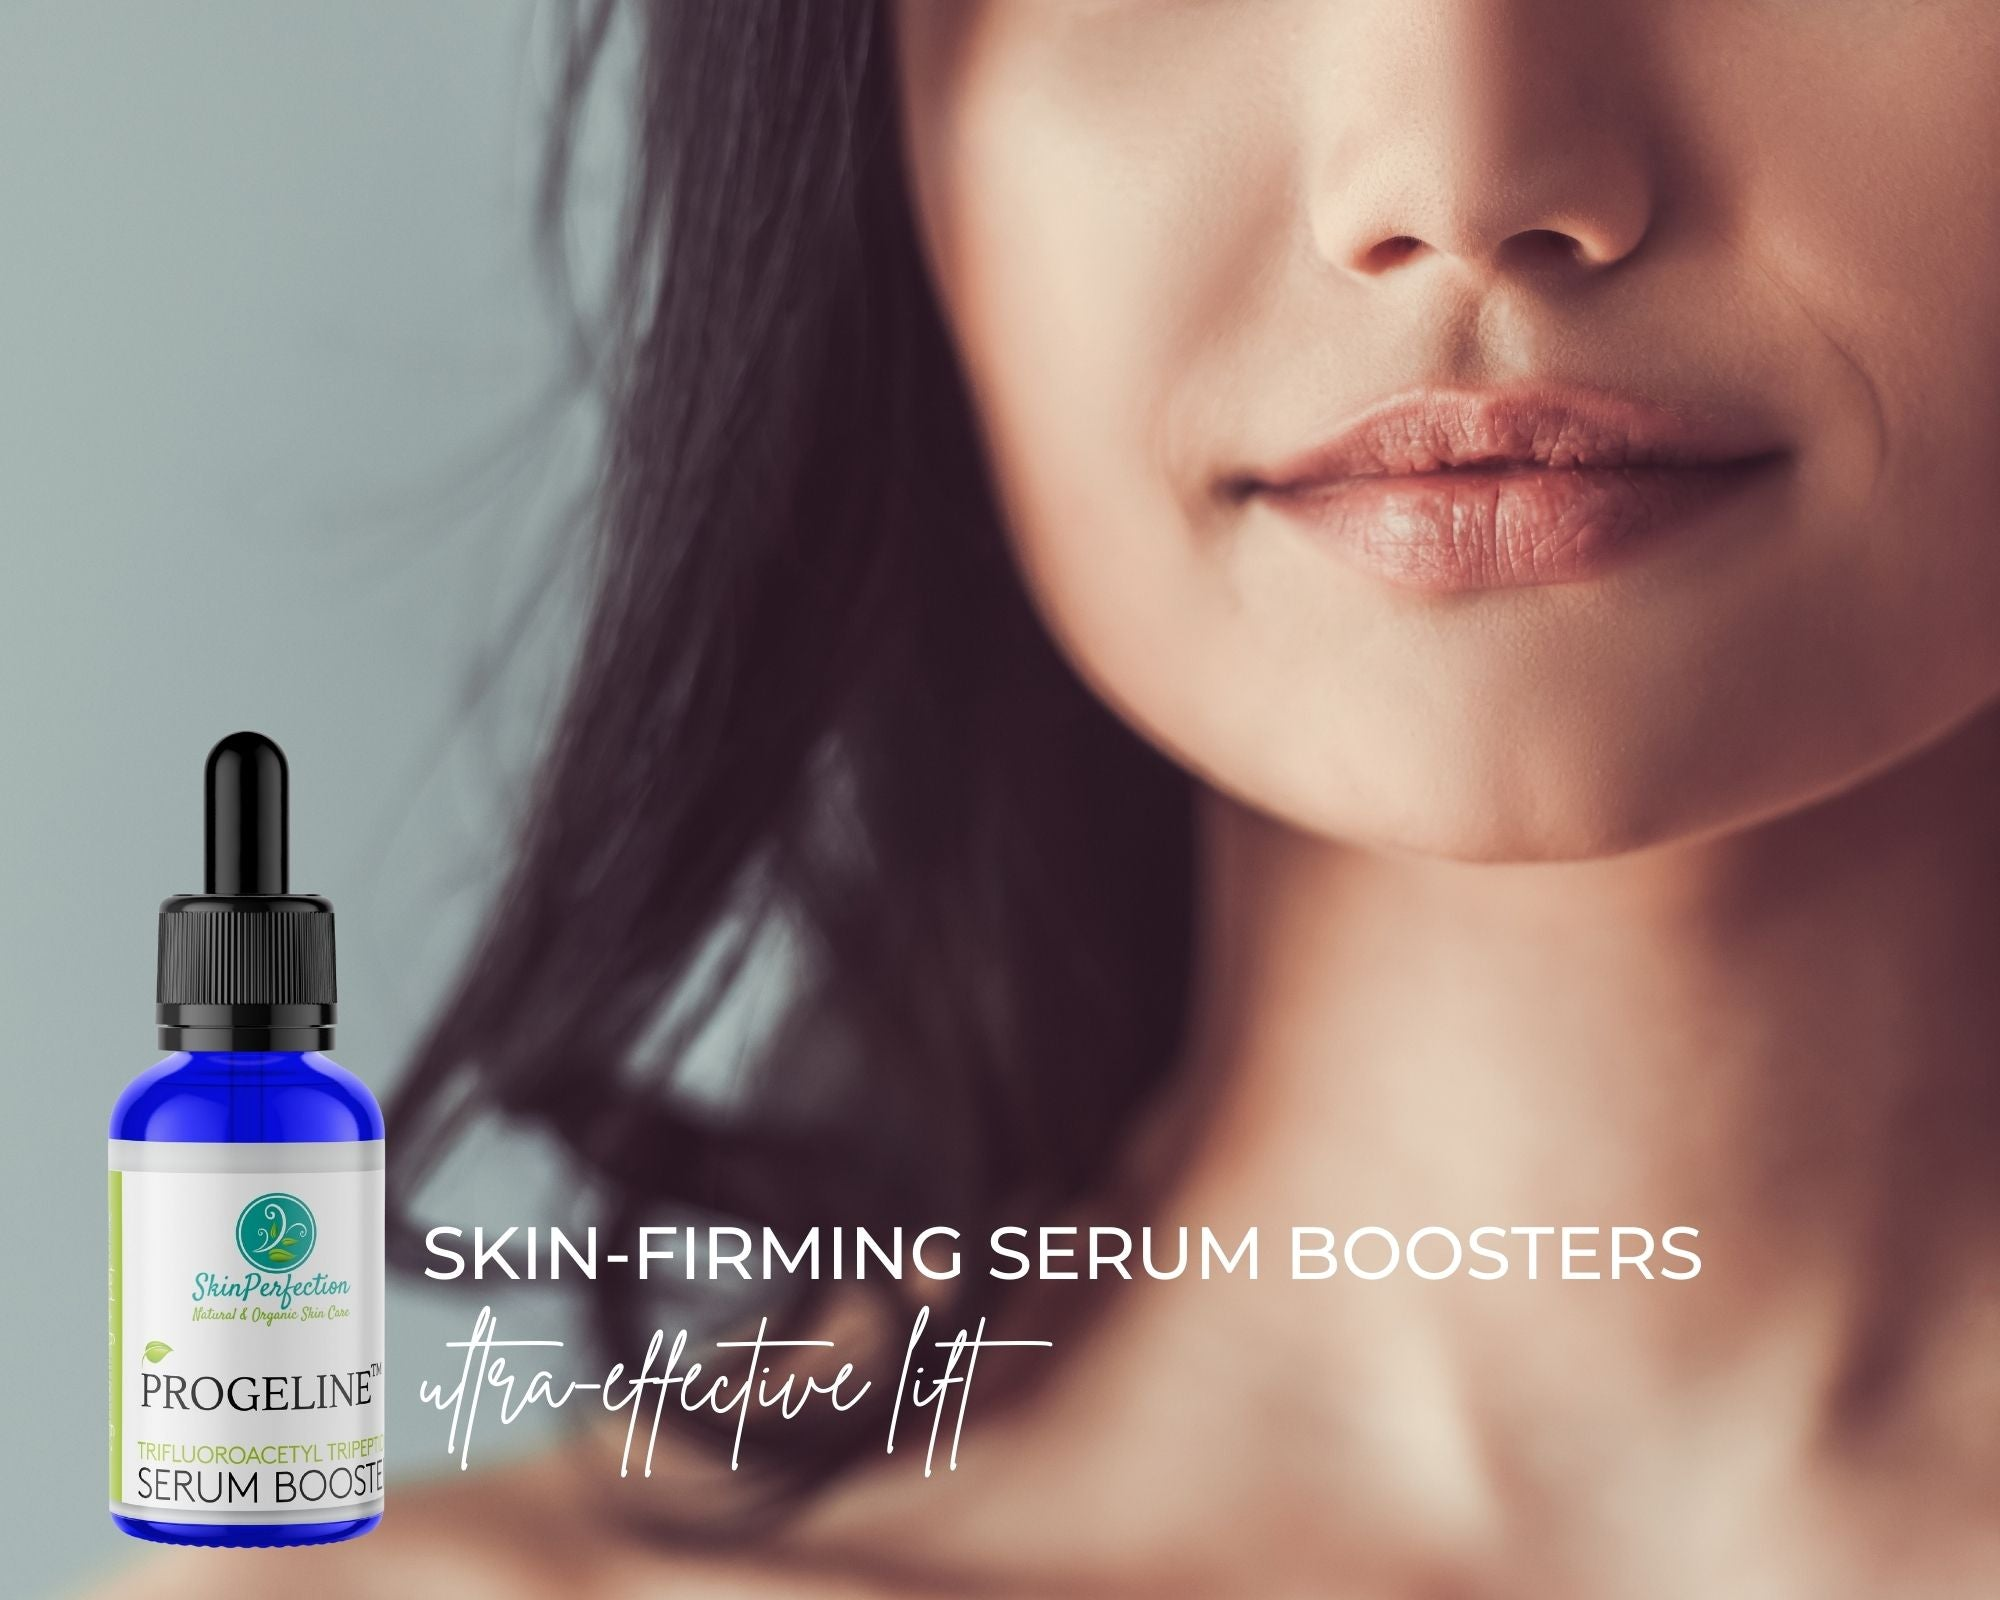 Skin Firming Serum Boosters with Progeline